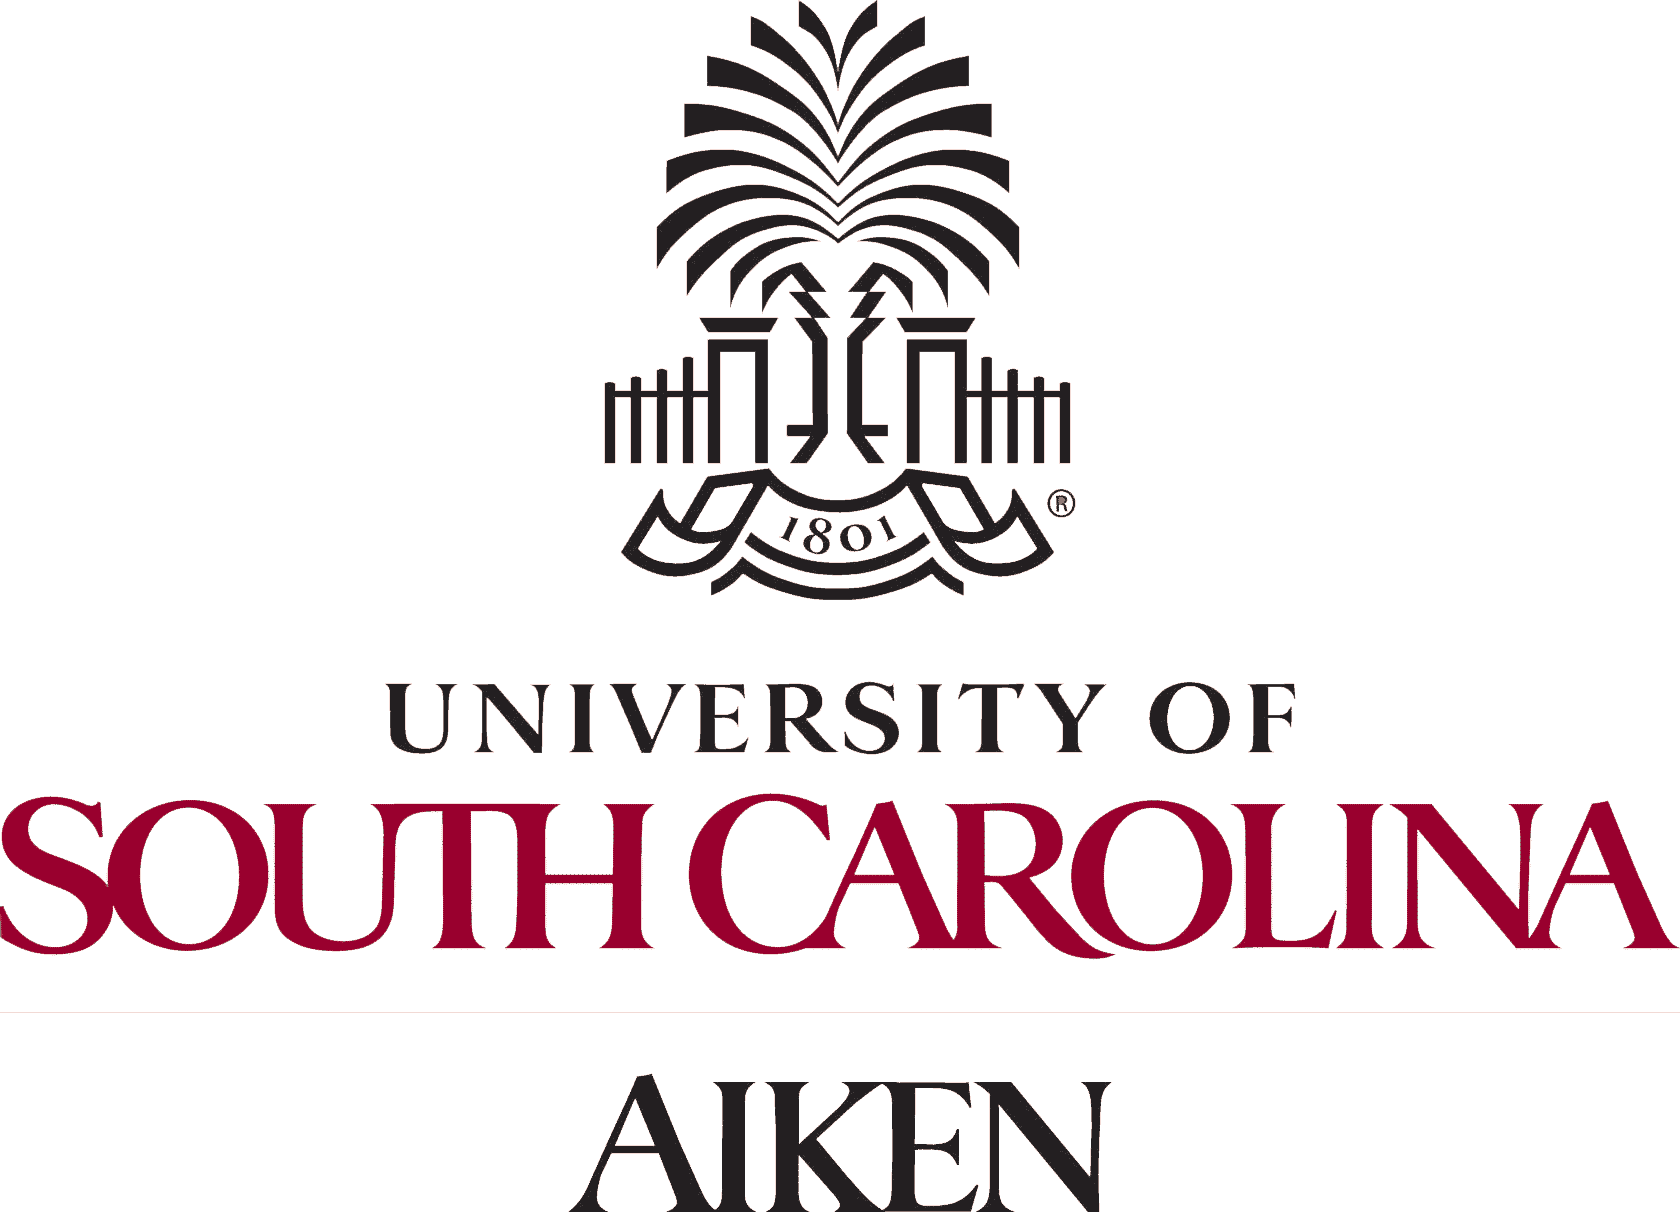 University of South Carolina Aiken logo from website